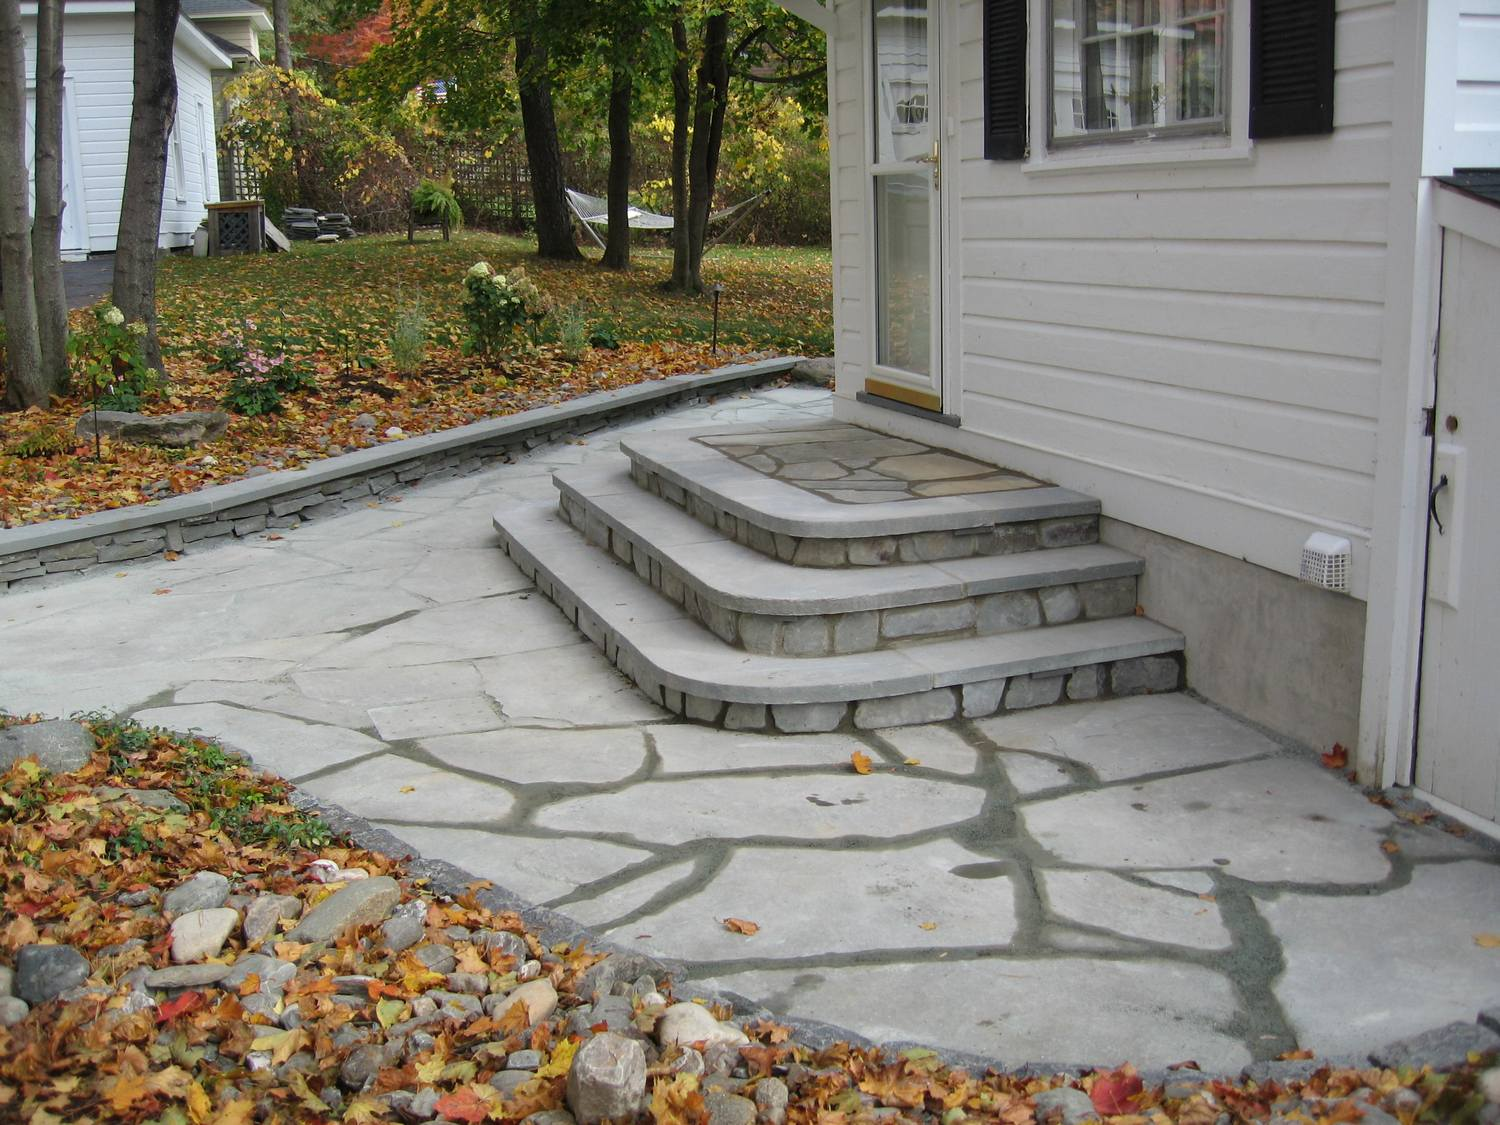 Heated Sidewalk Ideas Landscape Designer Hardscape Sidewalk Ideas